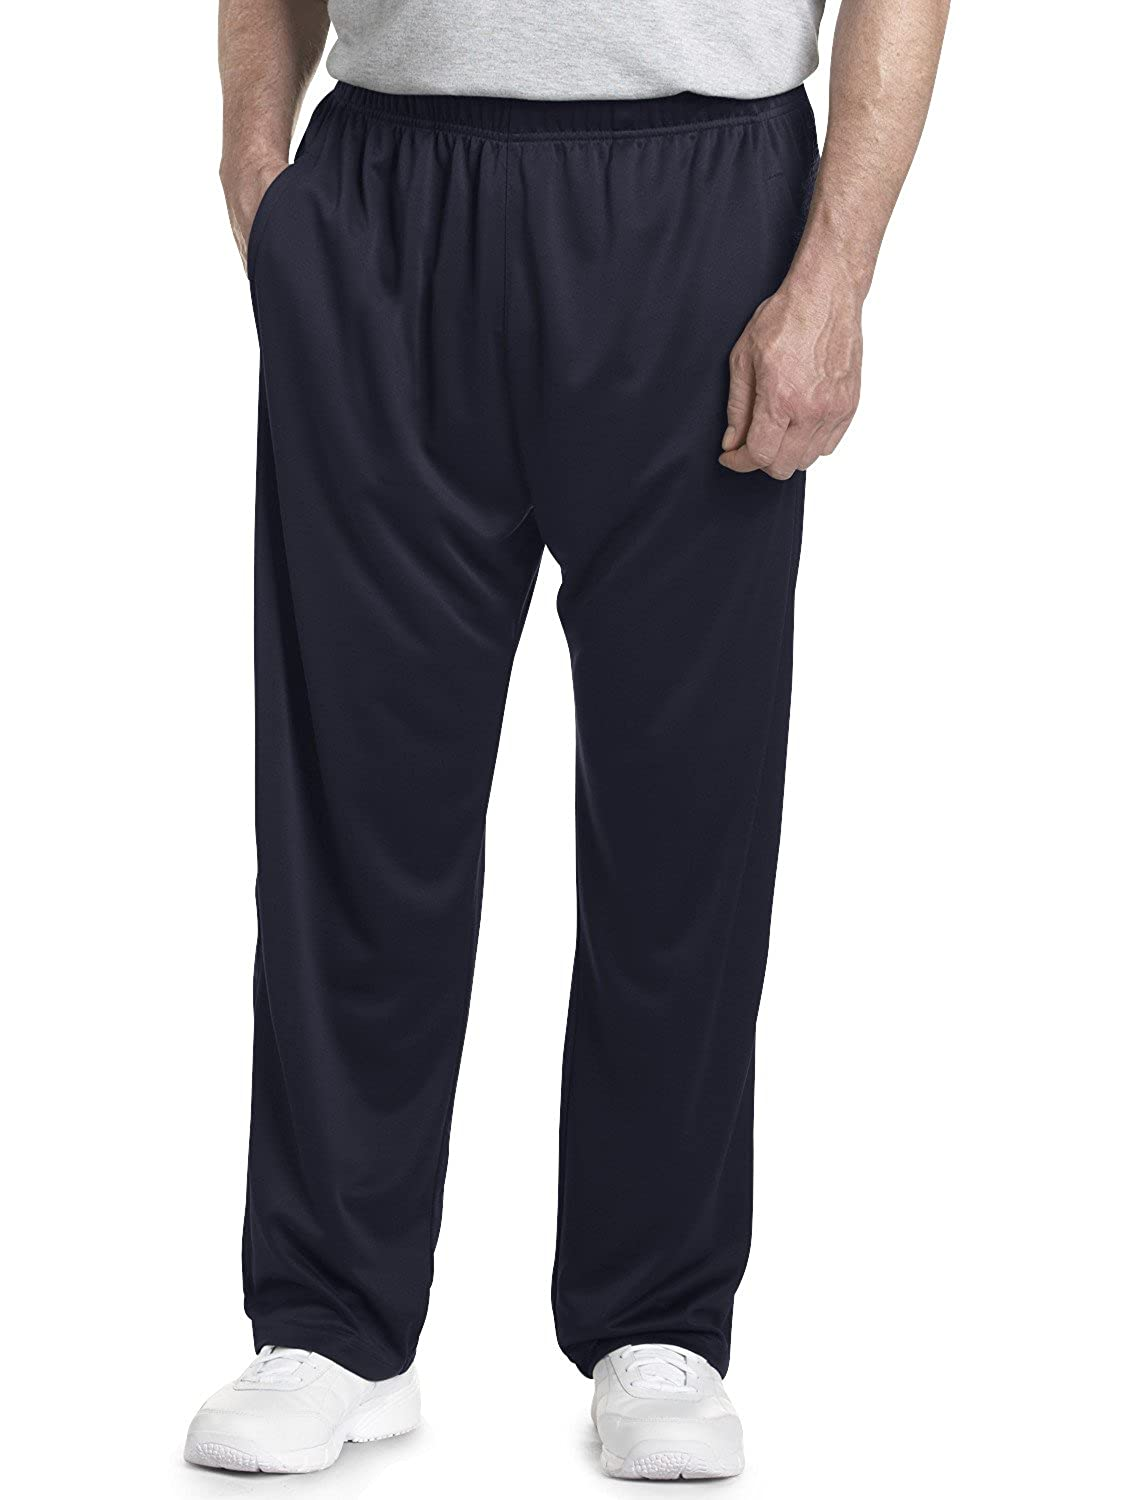 Reebok Big and Tall Play Dry Knit Pants